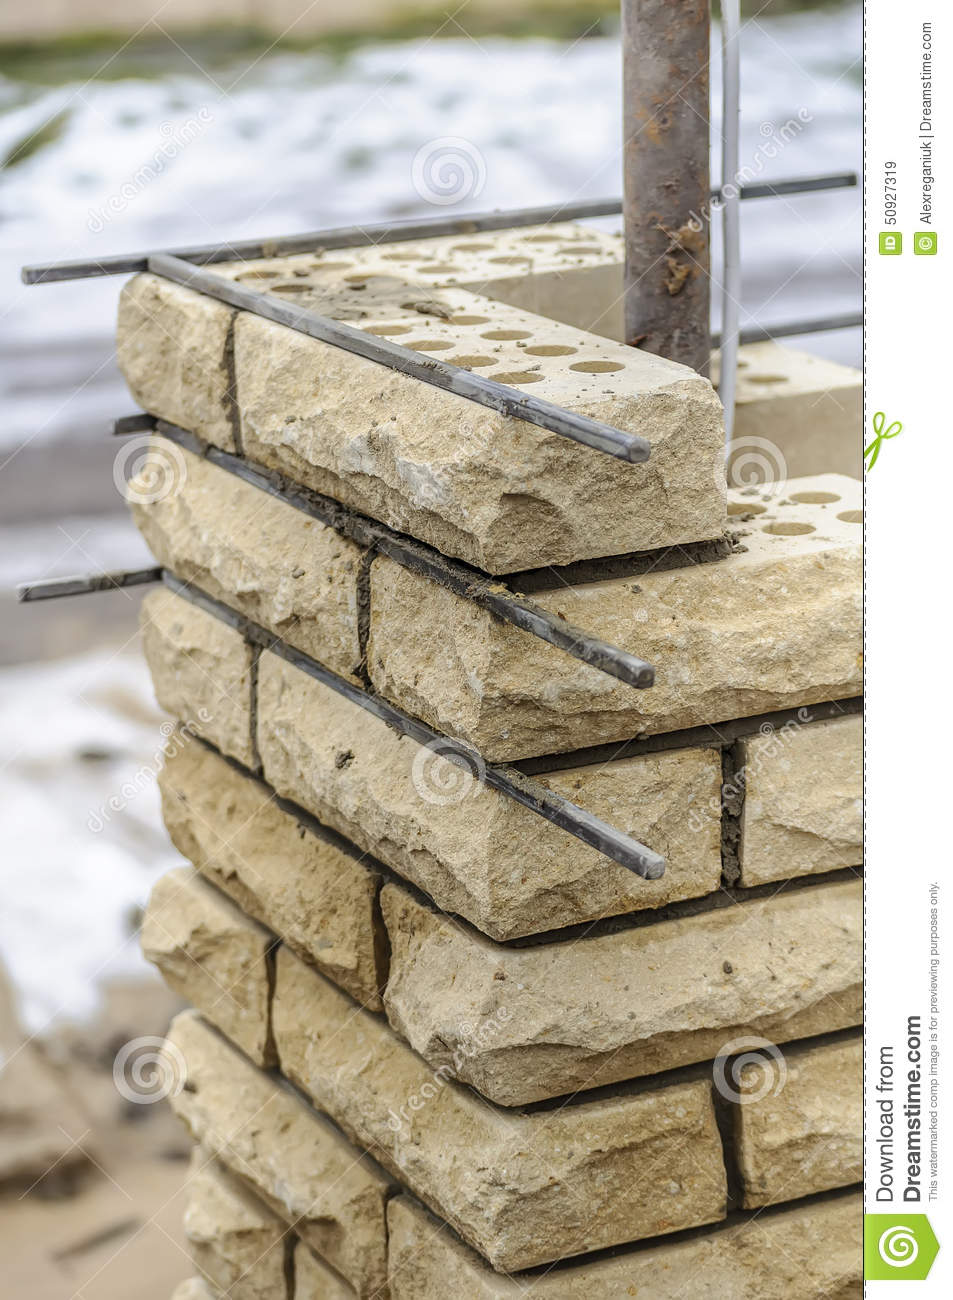 Building Column From Brick Stock Photo - Image: 50927319